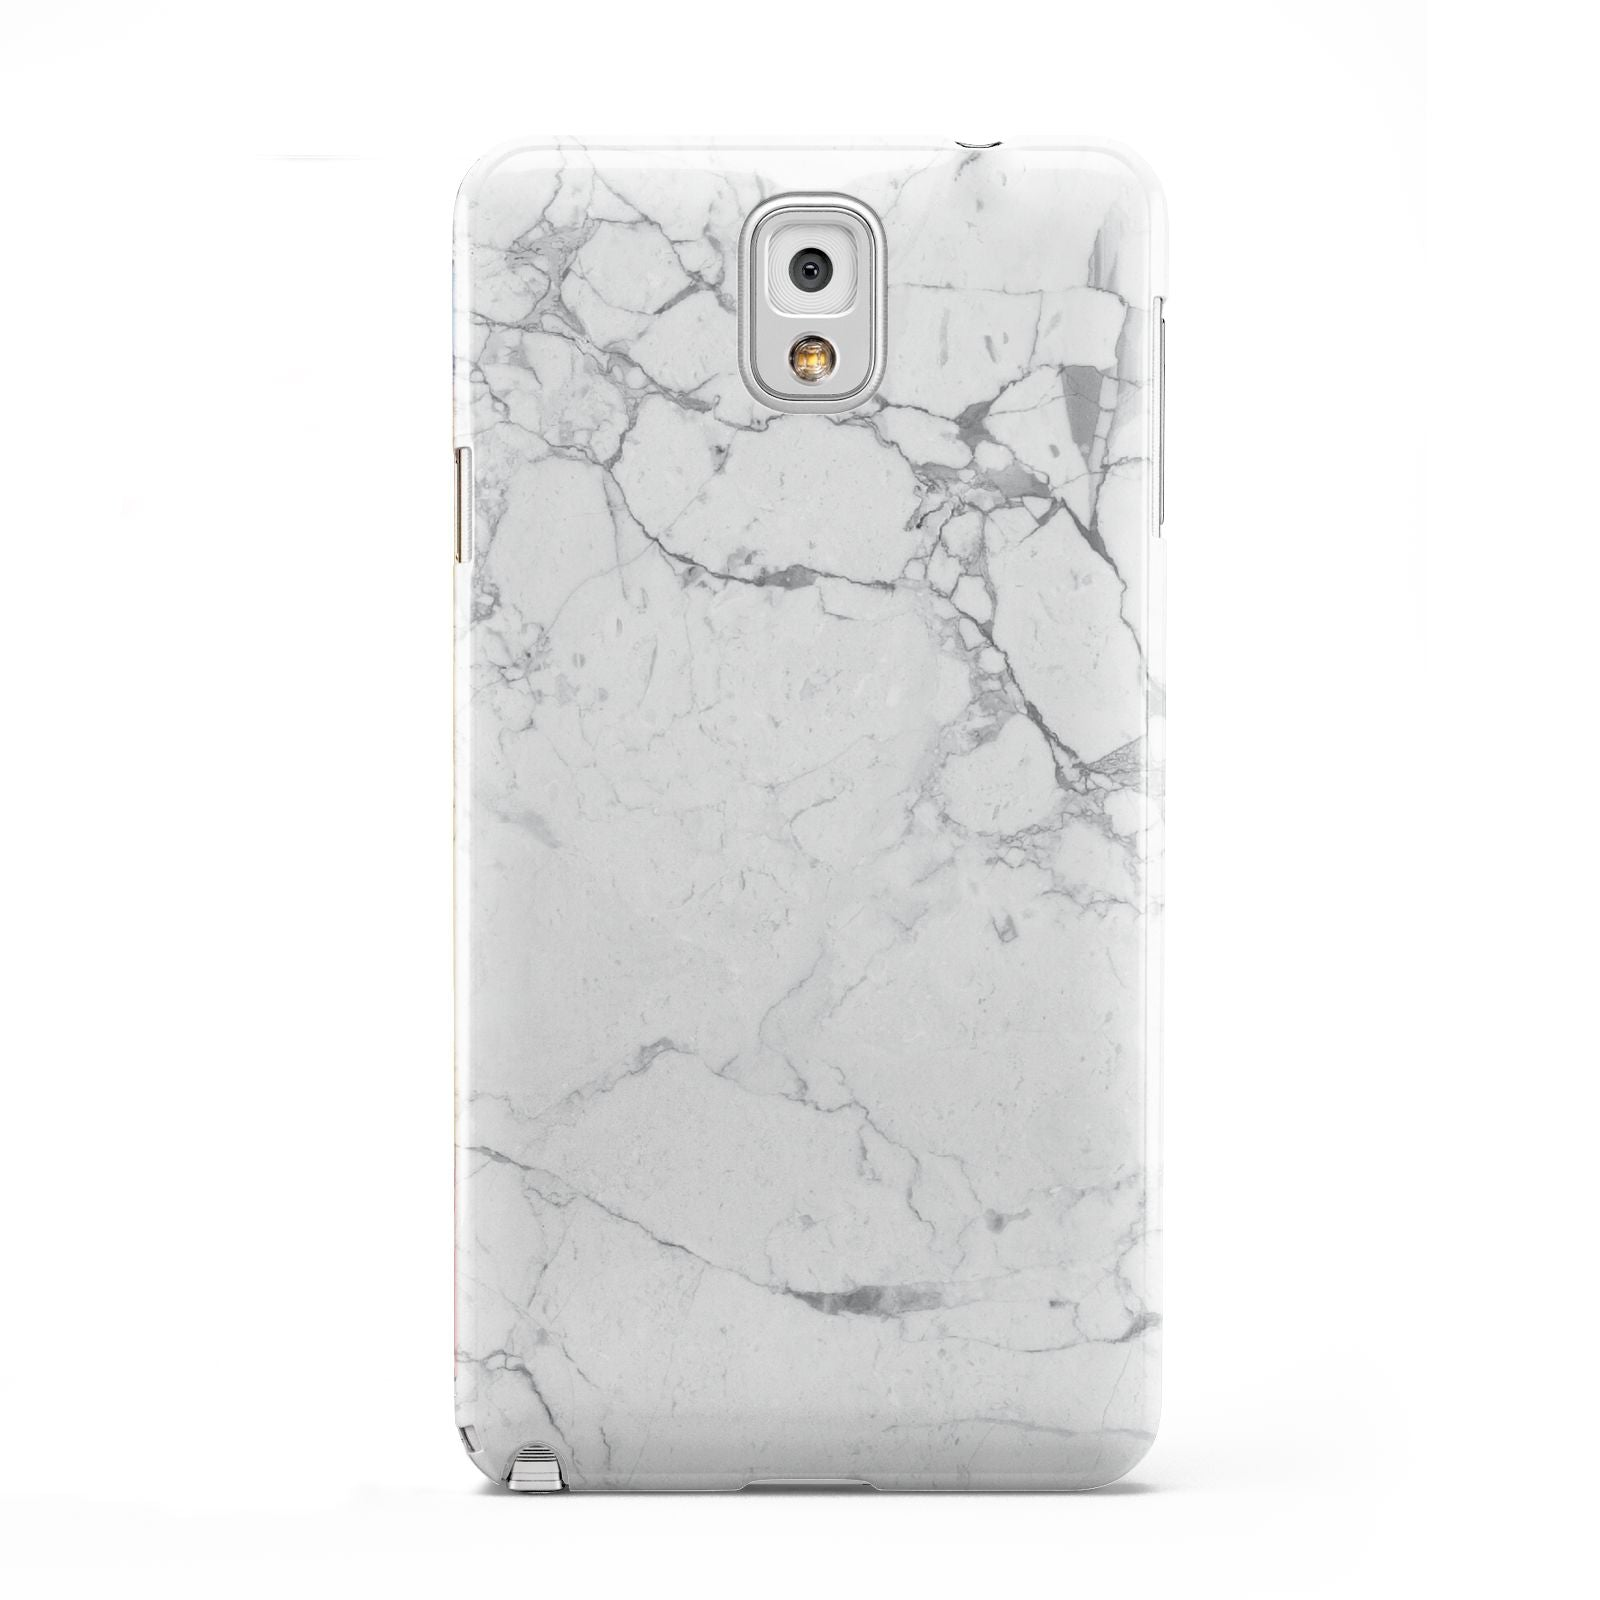 Faux Marble Effect Grey White Samsung Galaxy Note 3 Case